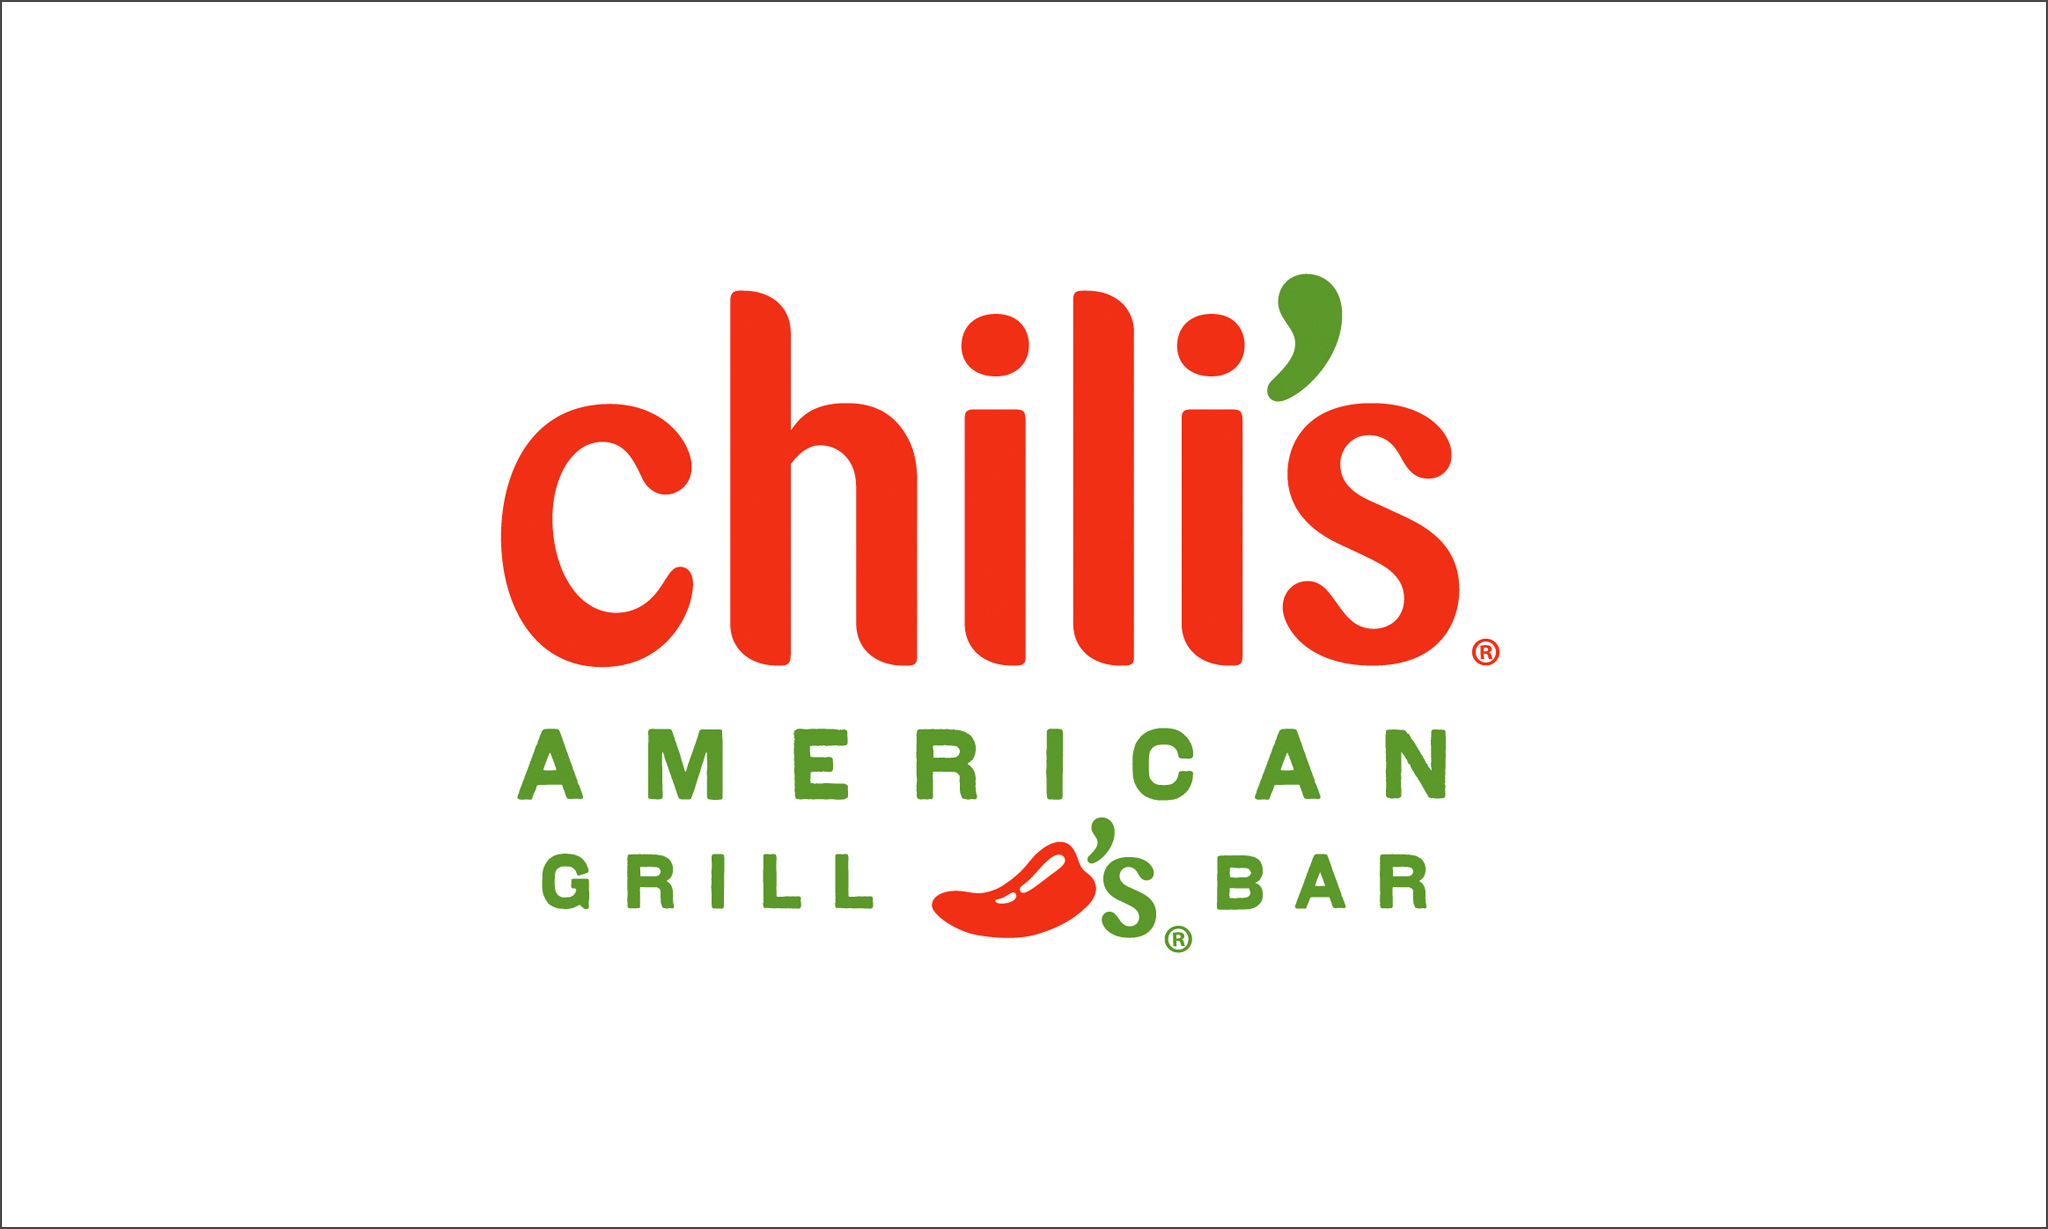 Chili's American Grill & Bar @ 52% off